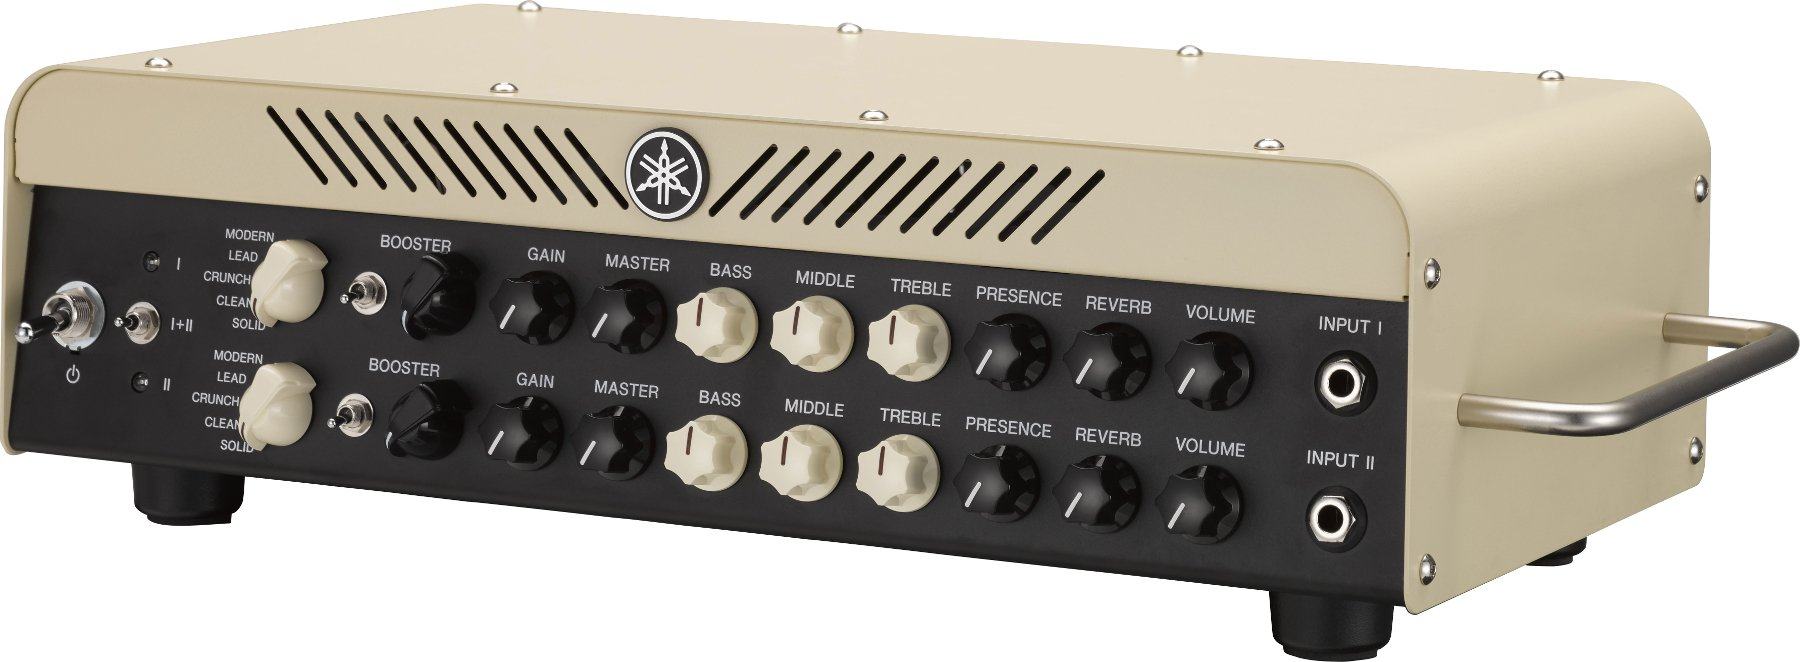 Dual-Channel Guitar Amp Head